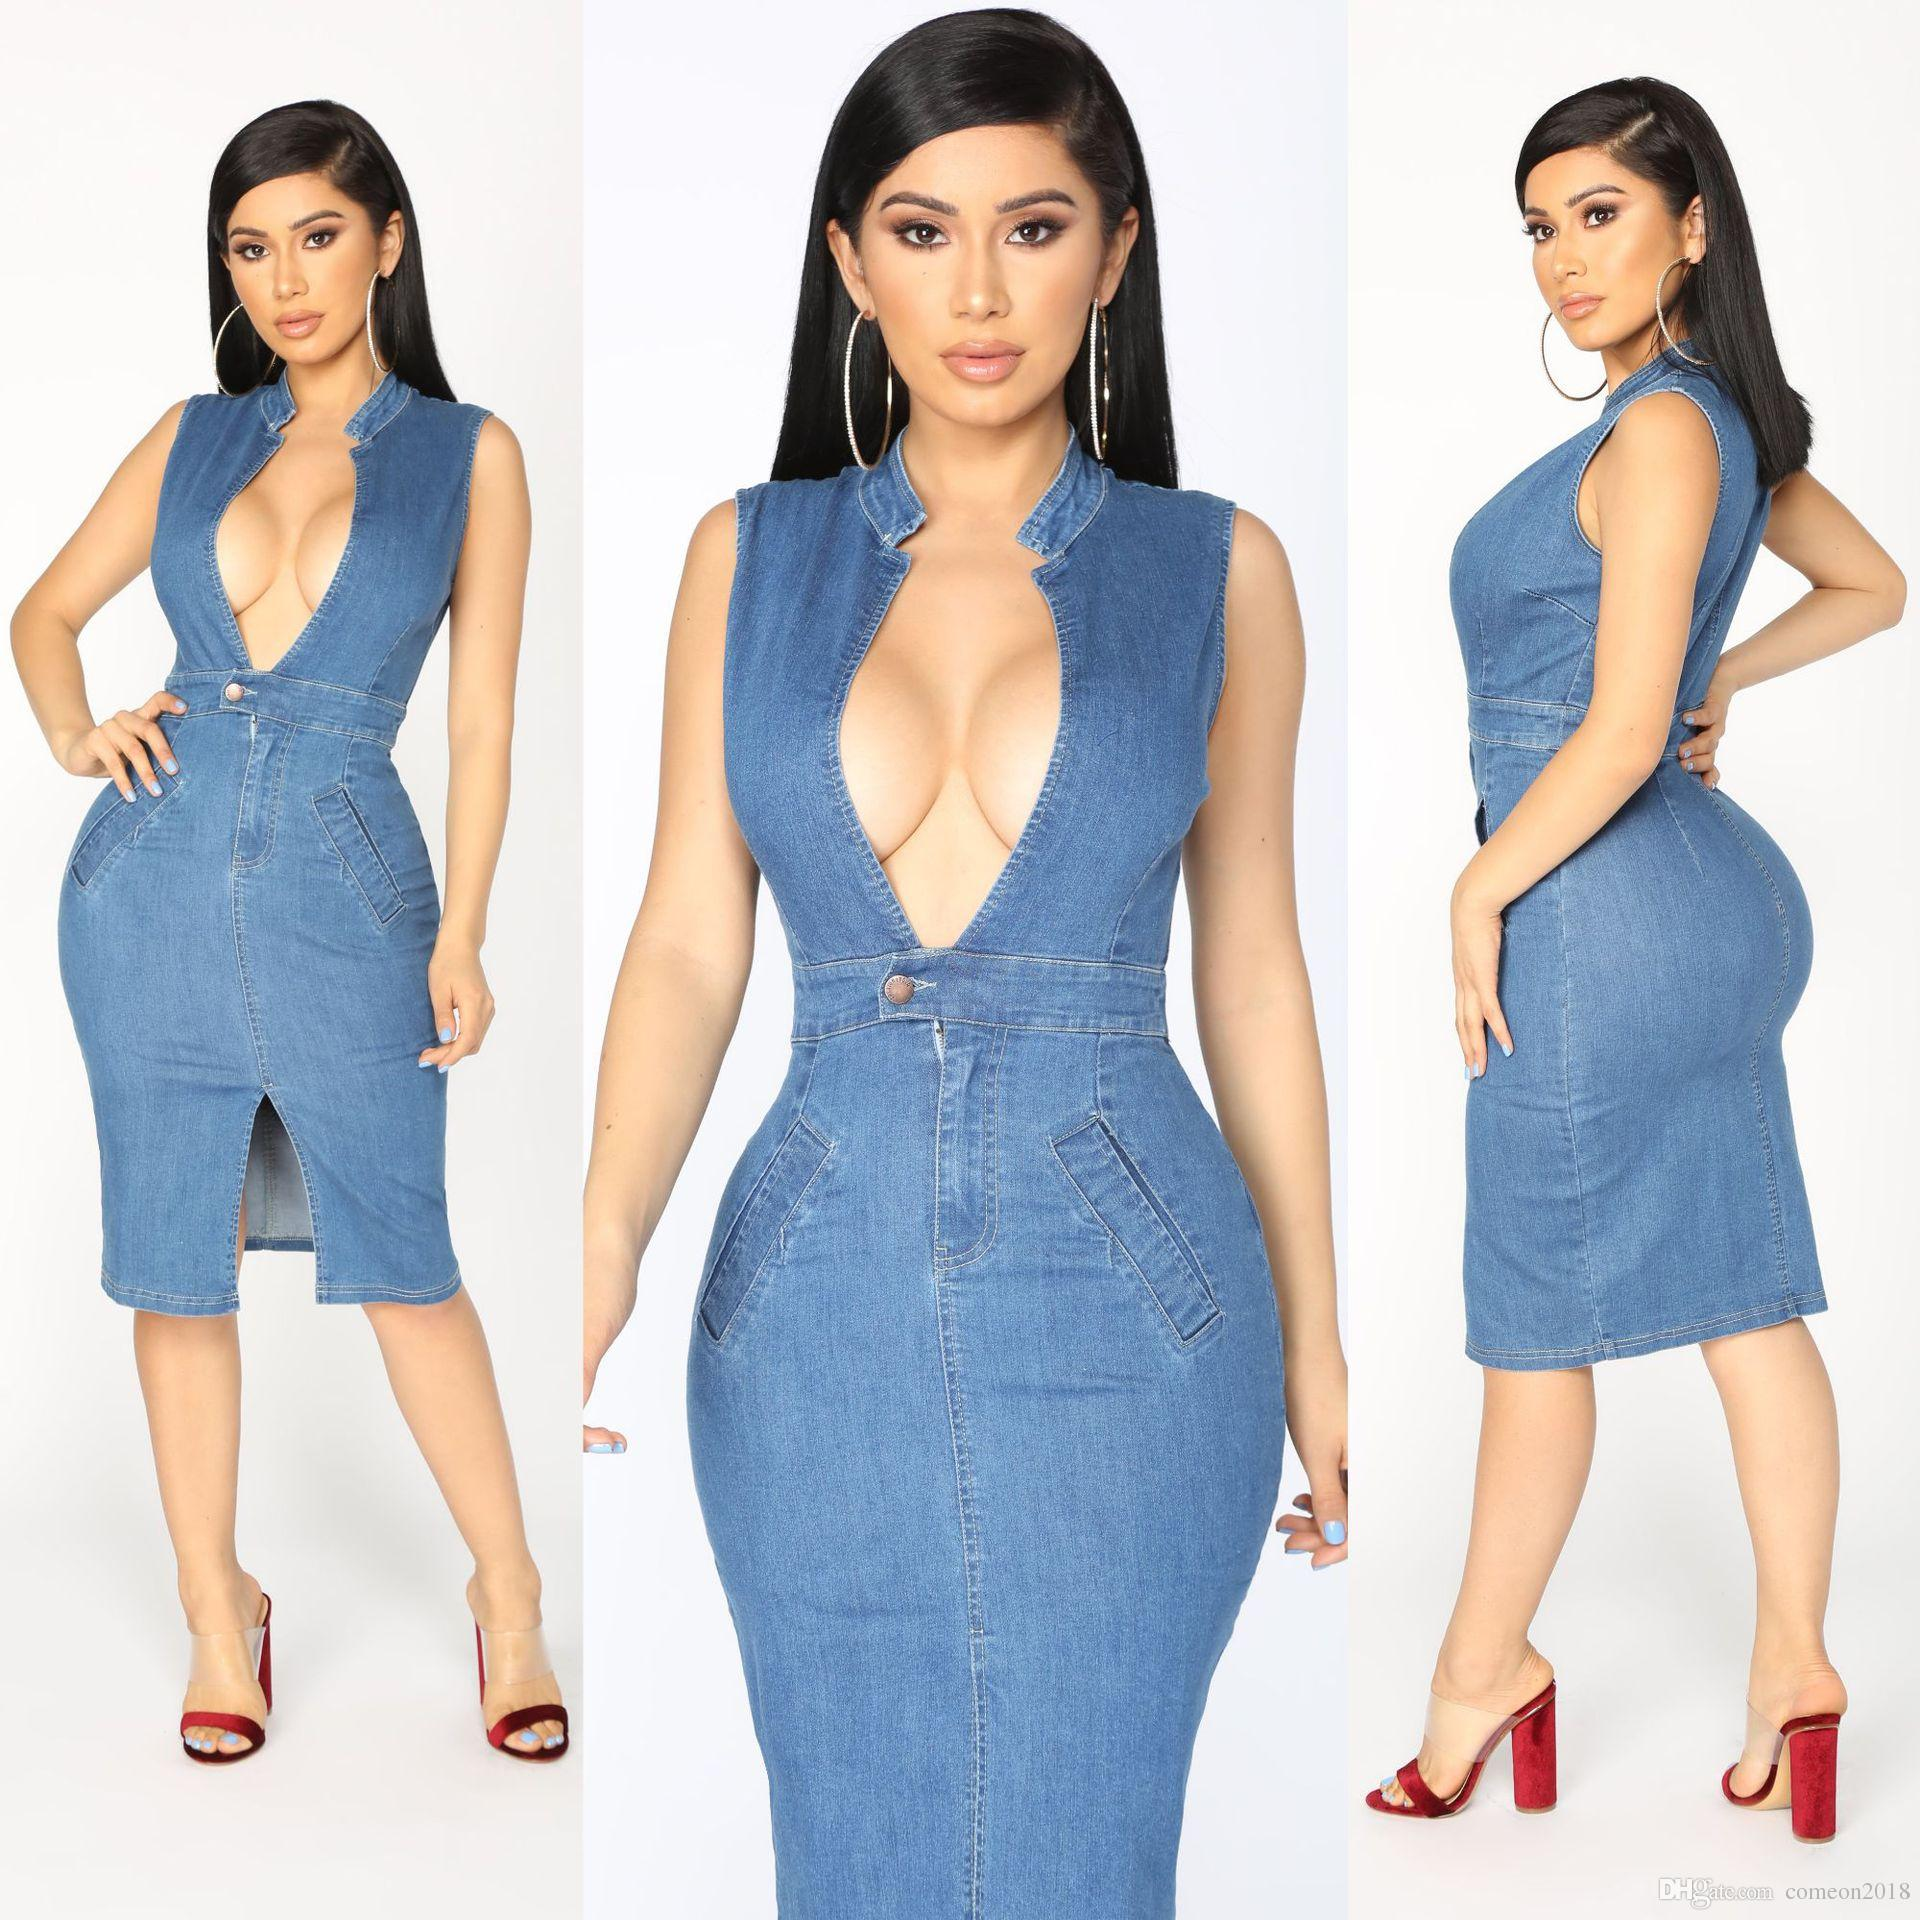 796e07b5f57 2018 Fashion Women Clothes Womens Party Dress Vintage Sexy Sleeveless Denim  Women Dress Solid Deep V Neck Bodycon Jean Dresses Clubwear Party Dresses  ...